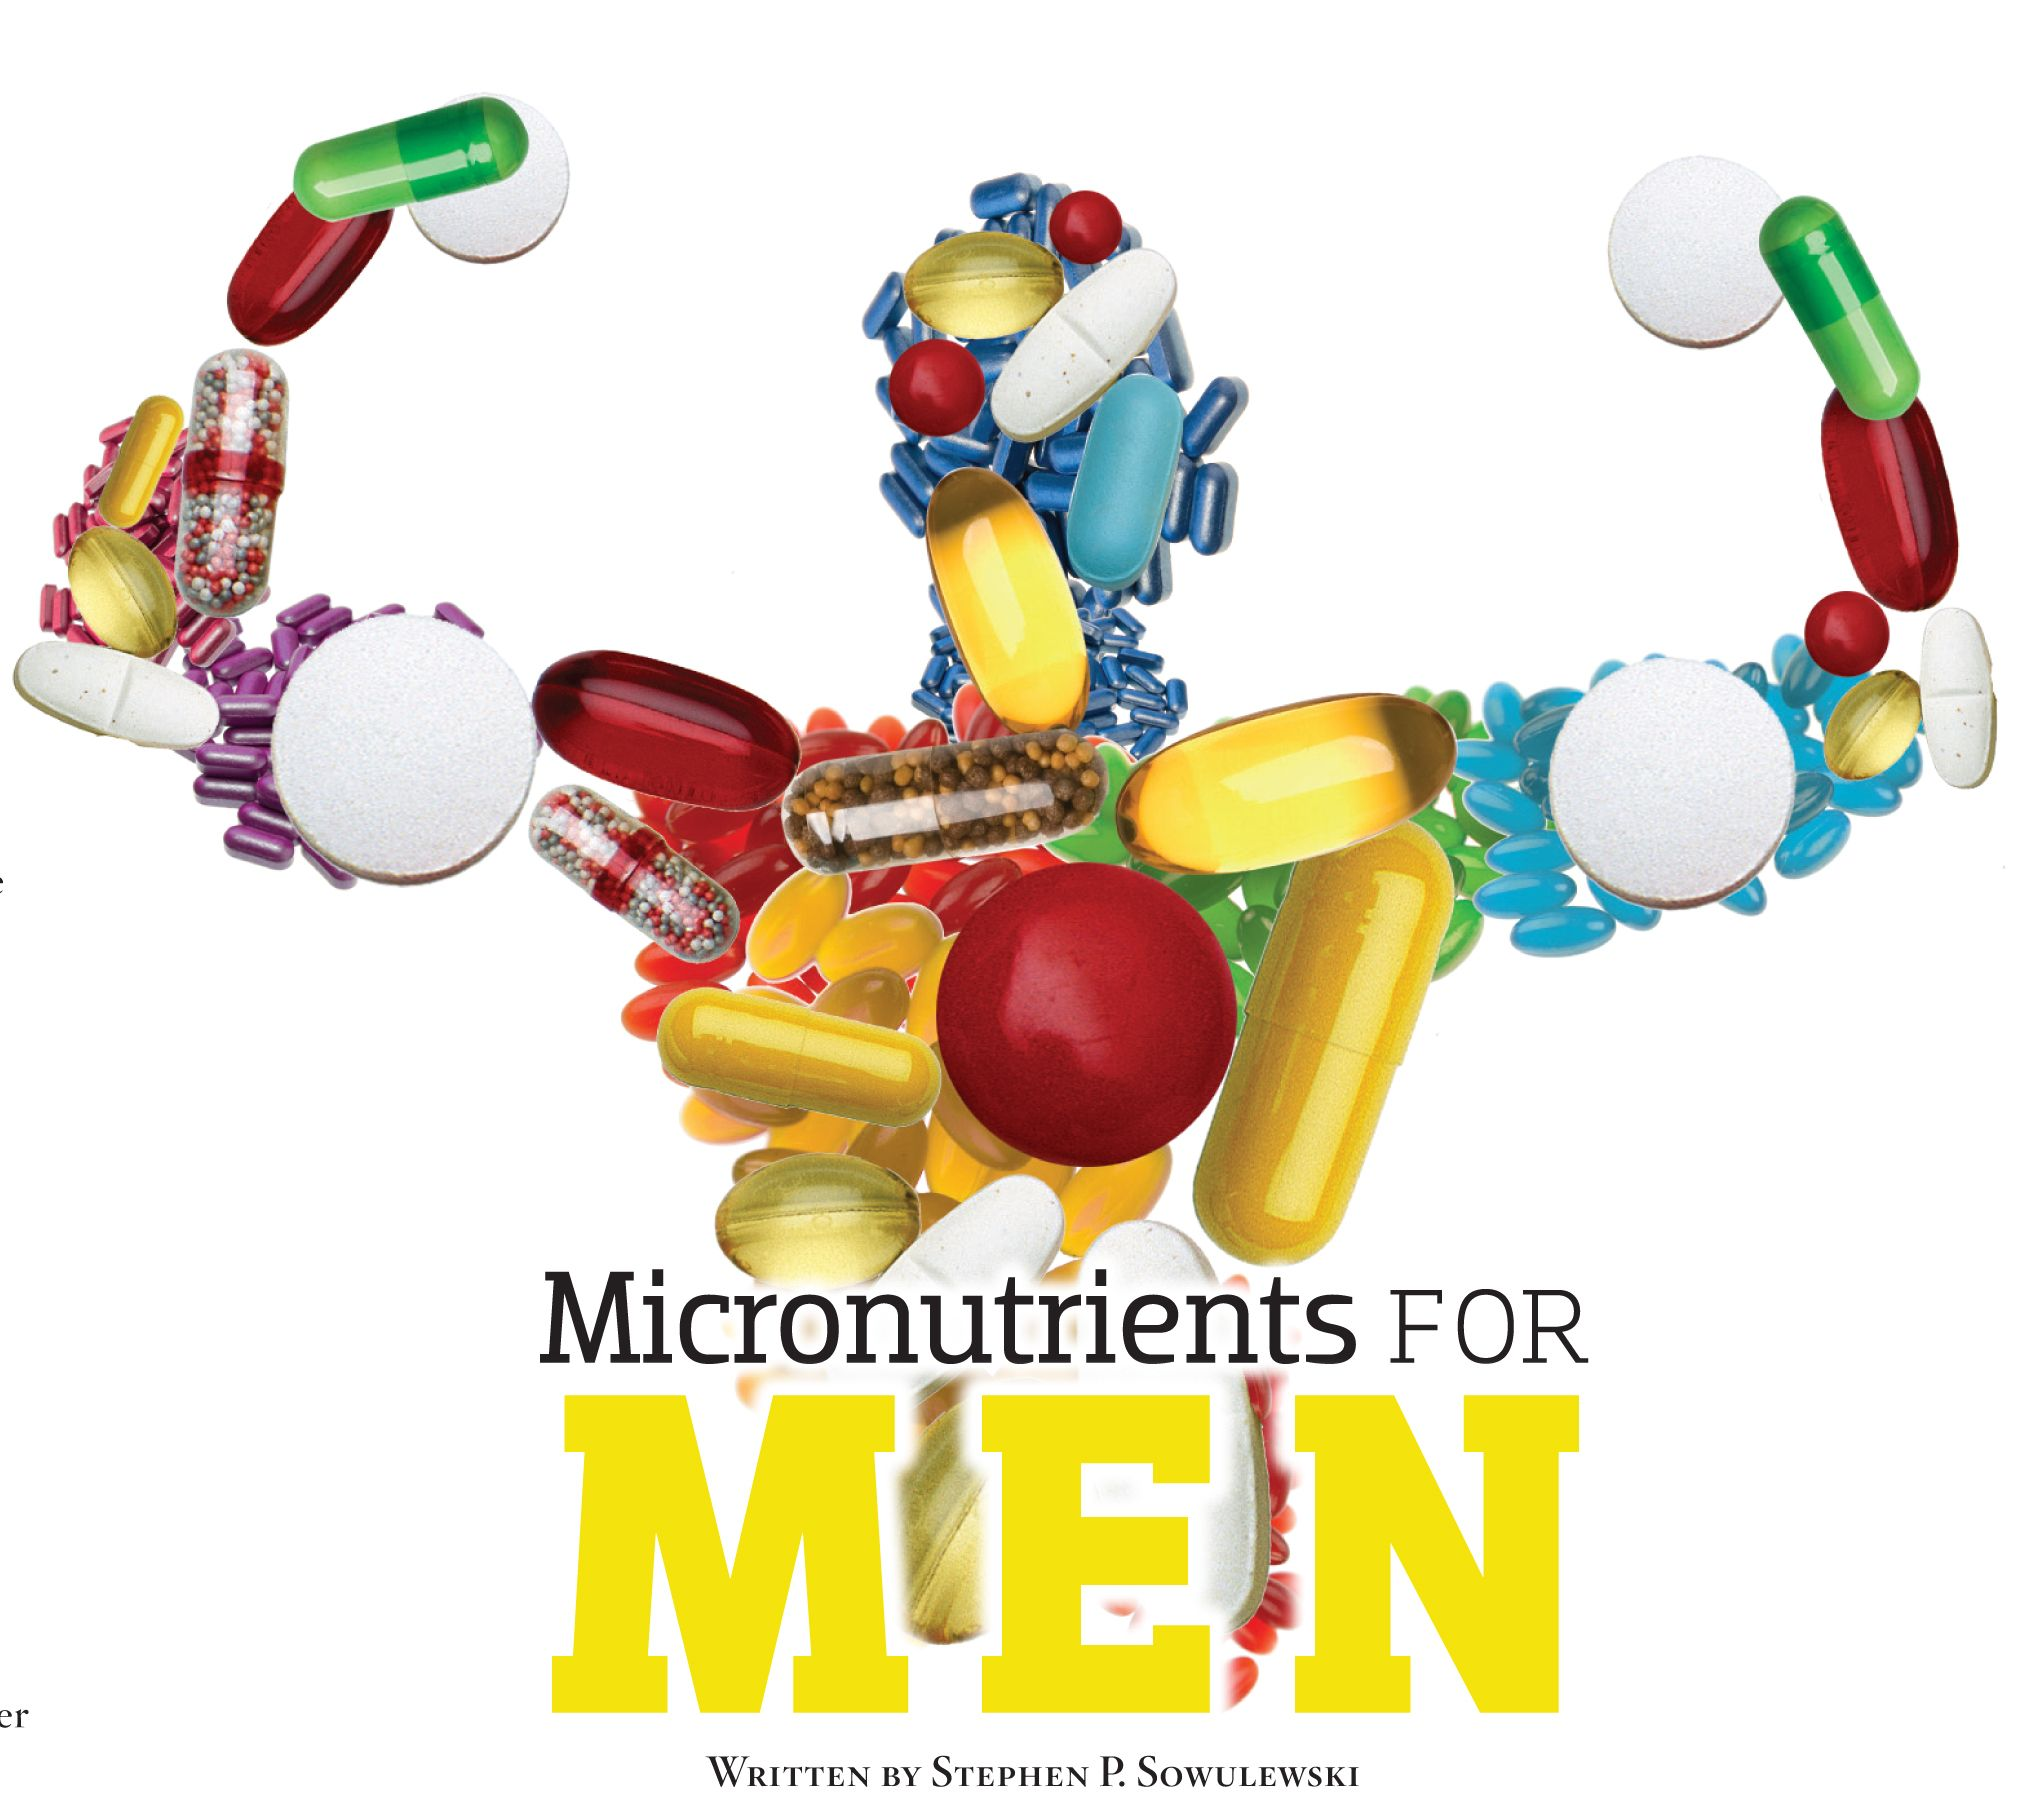 Vitamins and minerals are a great way to prevent aging and retain that youthful appearance and resilience we had in our younger days. As you get older, you tend to start requiring more nutrients in the form of vitamins and minerals to keep your skin soft, fight off colds and promote energy that we would consume far more quickly by relying only on the foods we eat. To ensure that you are getting the... FULL ARTICLE @ http://www.101vitamins-minerals.com/vitamins-what-you-need-to-know-now-9/